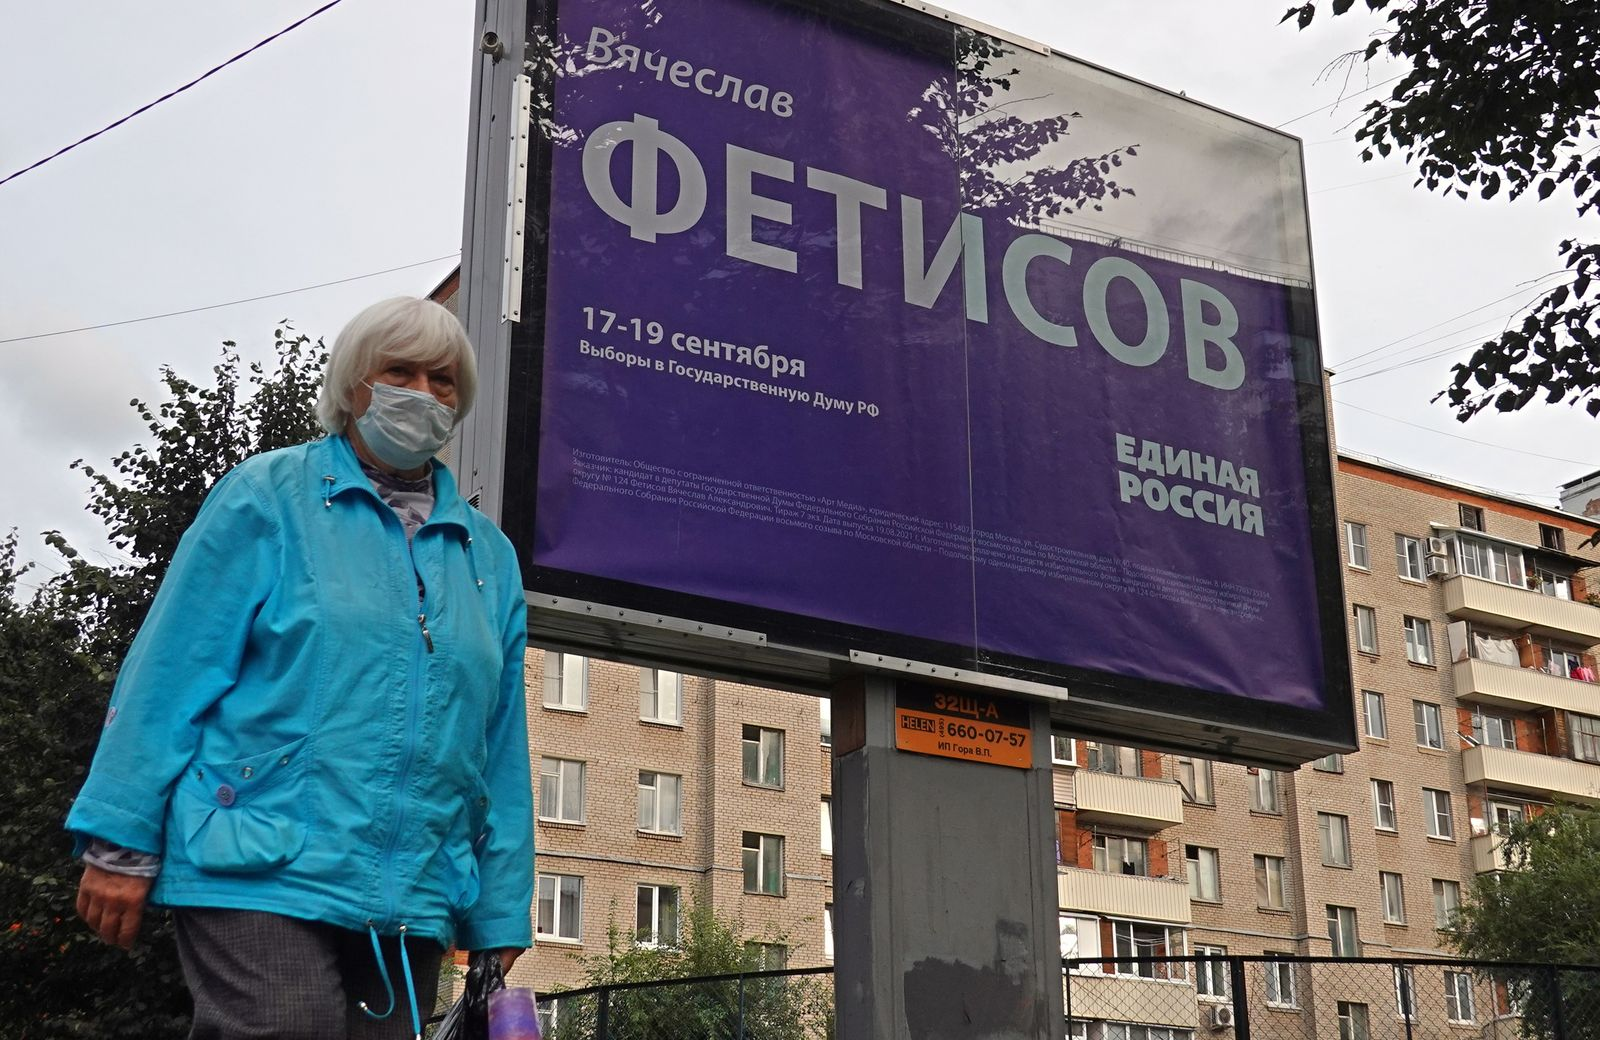 Elections billboards in Russia